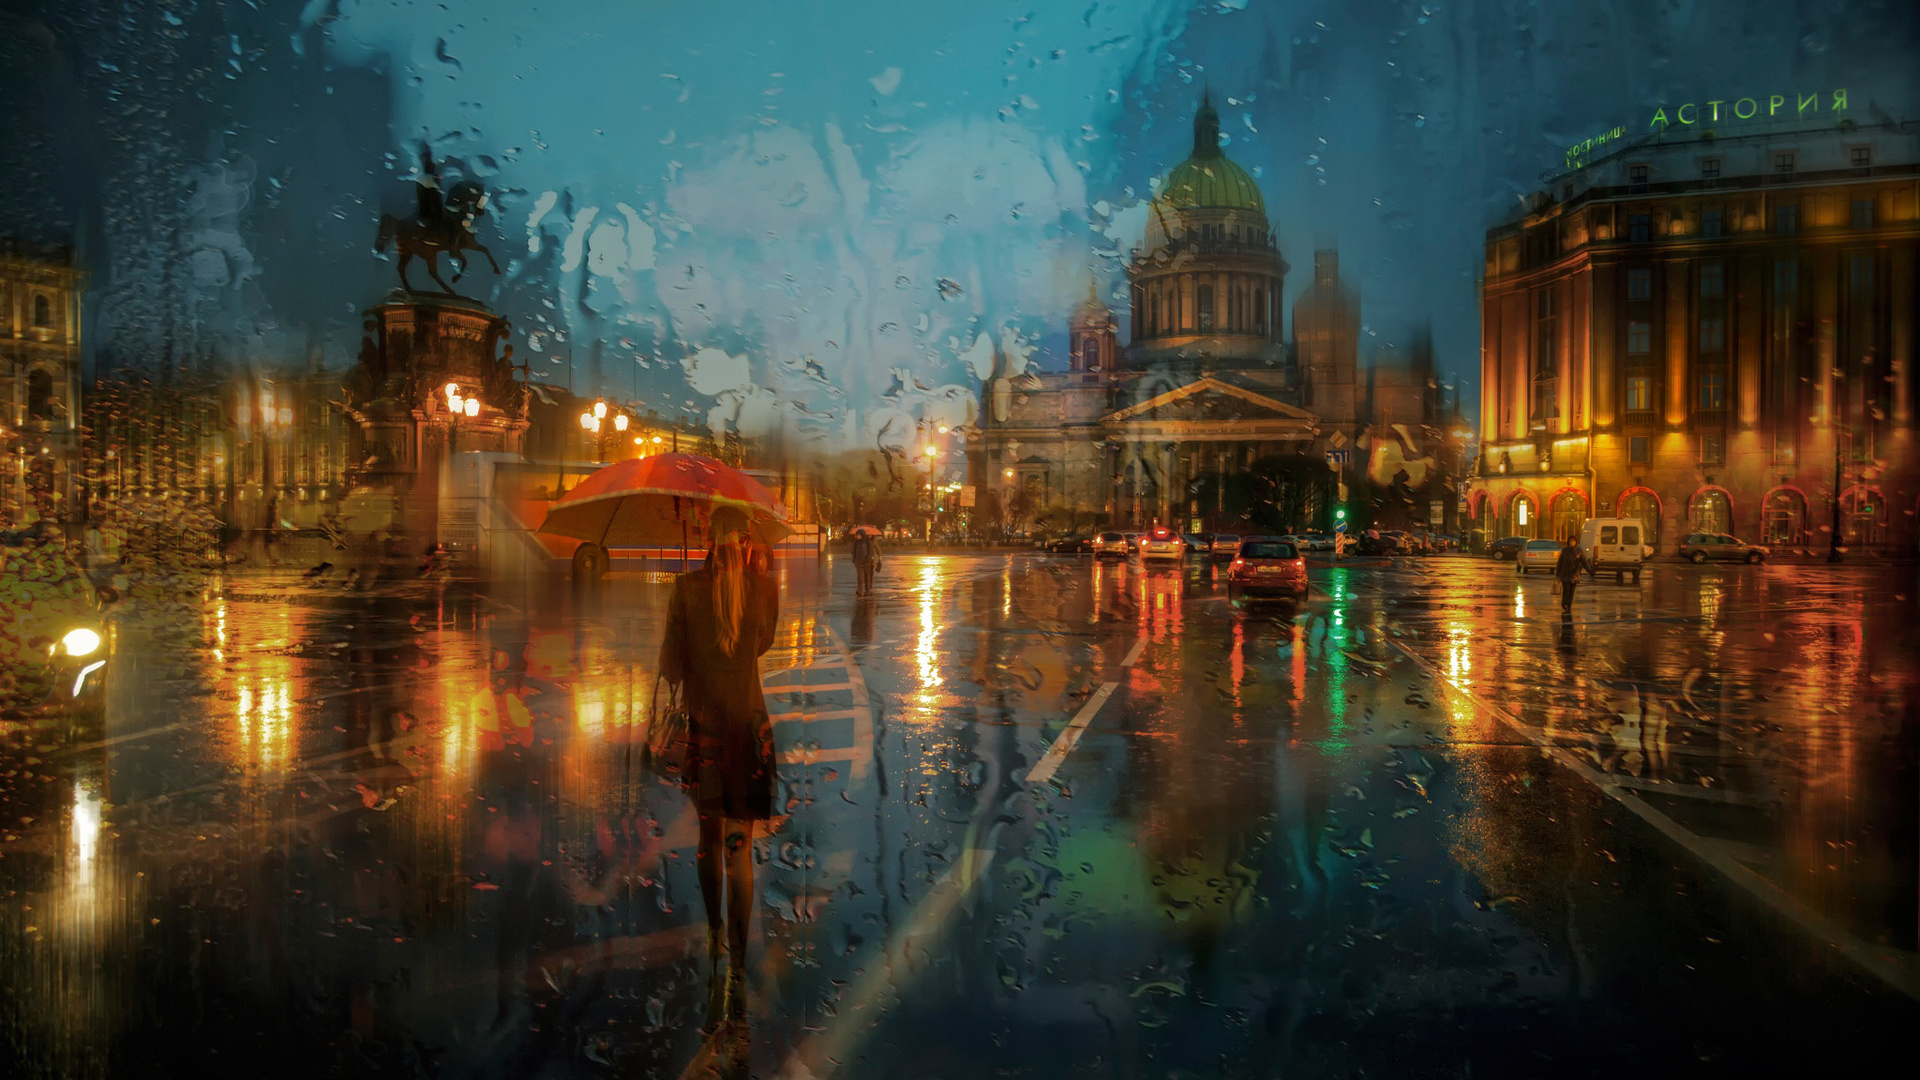 Rainy Weather Wallpapers High Quality Download Free